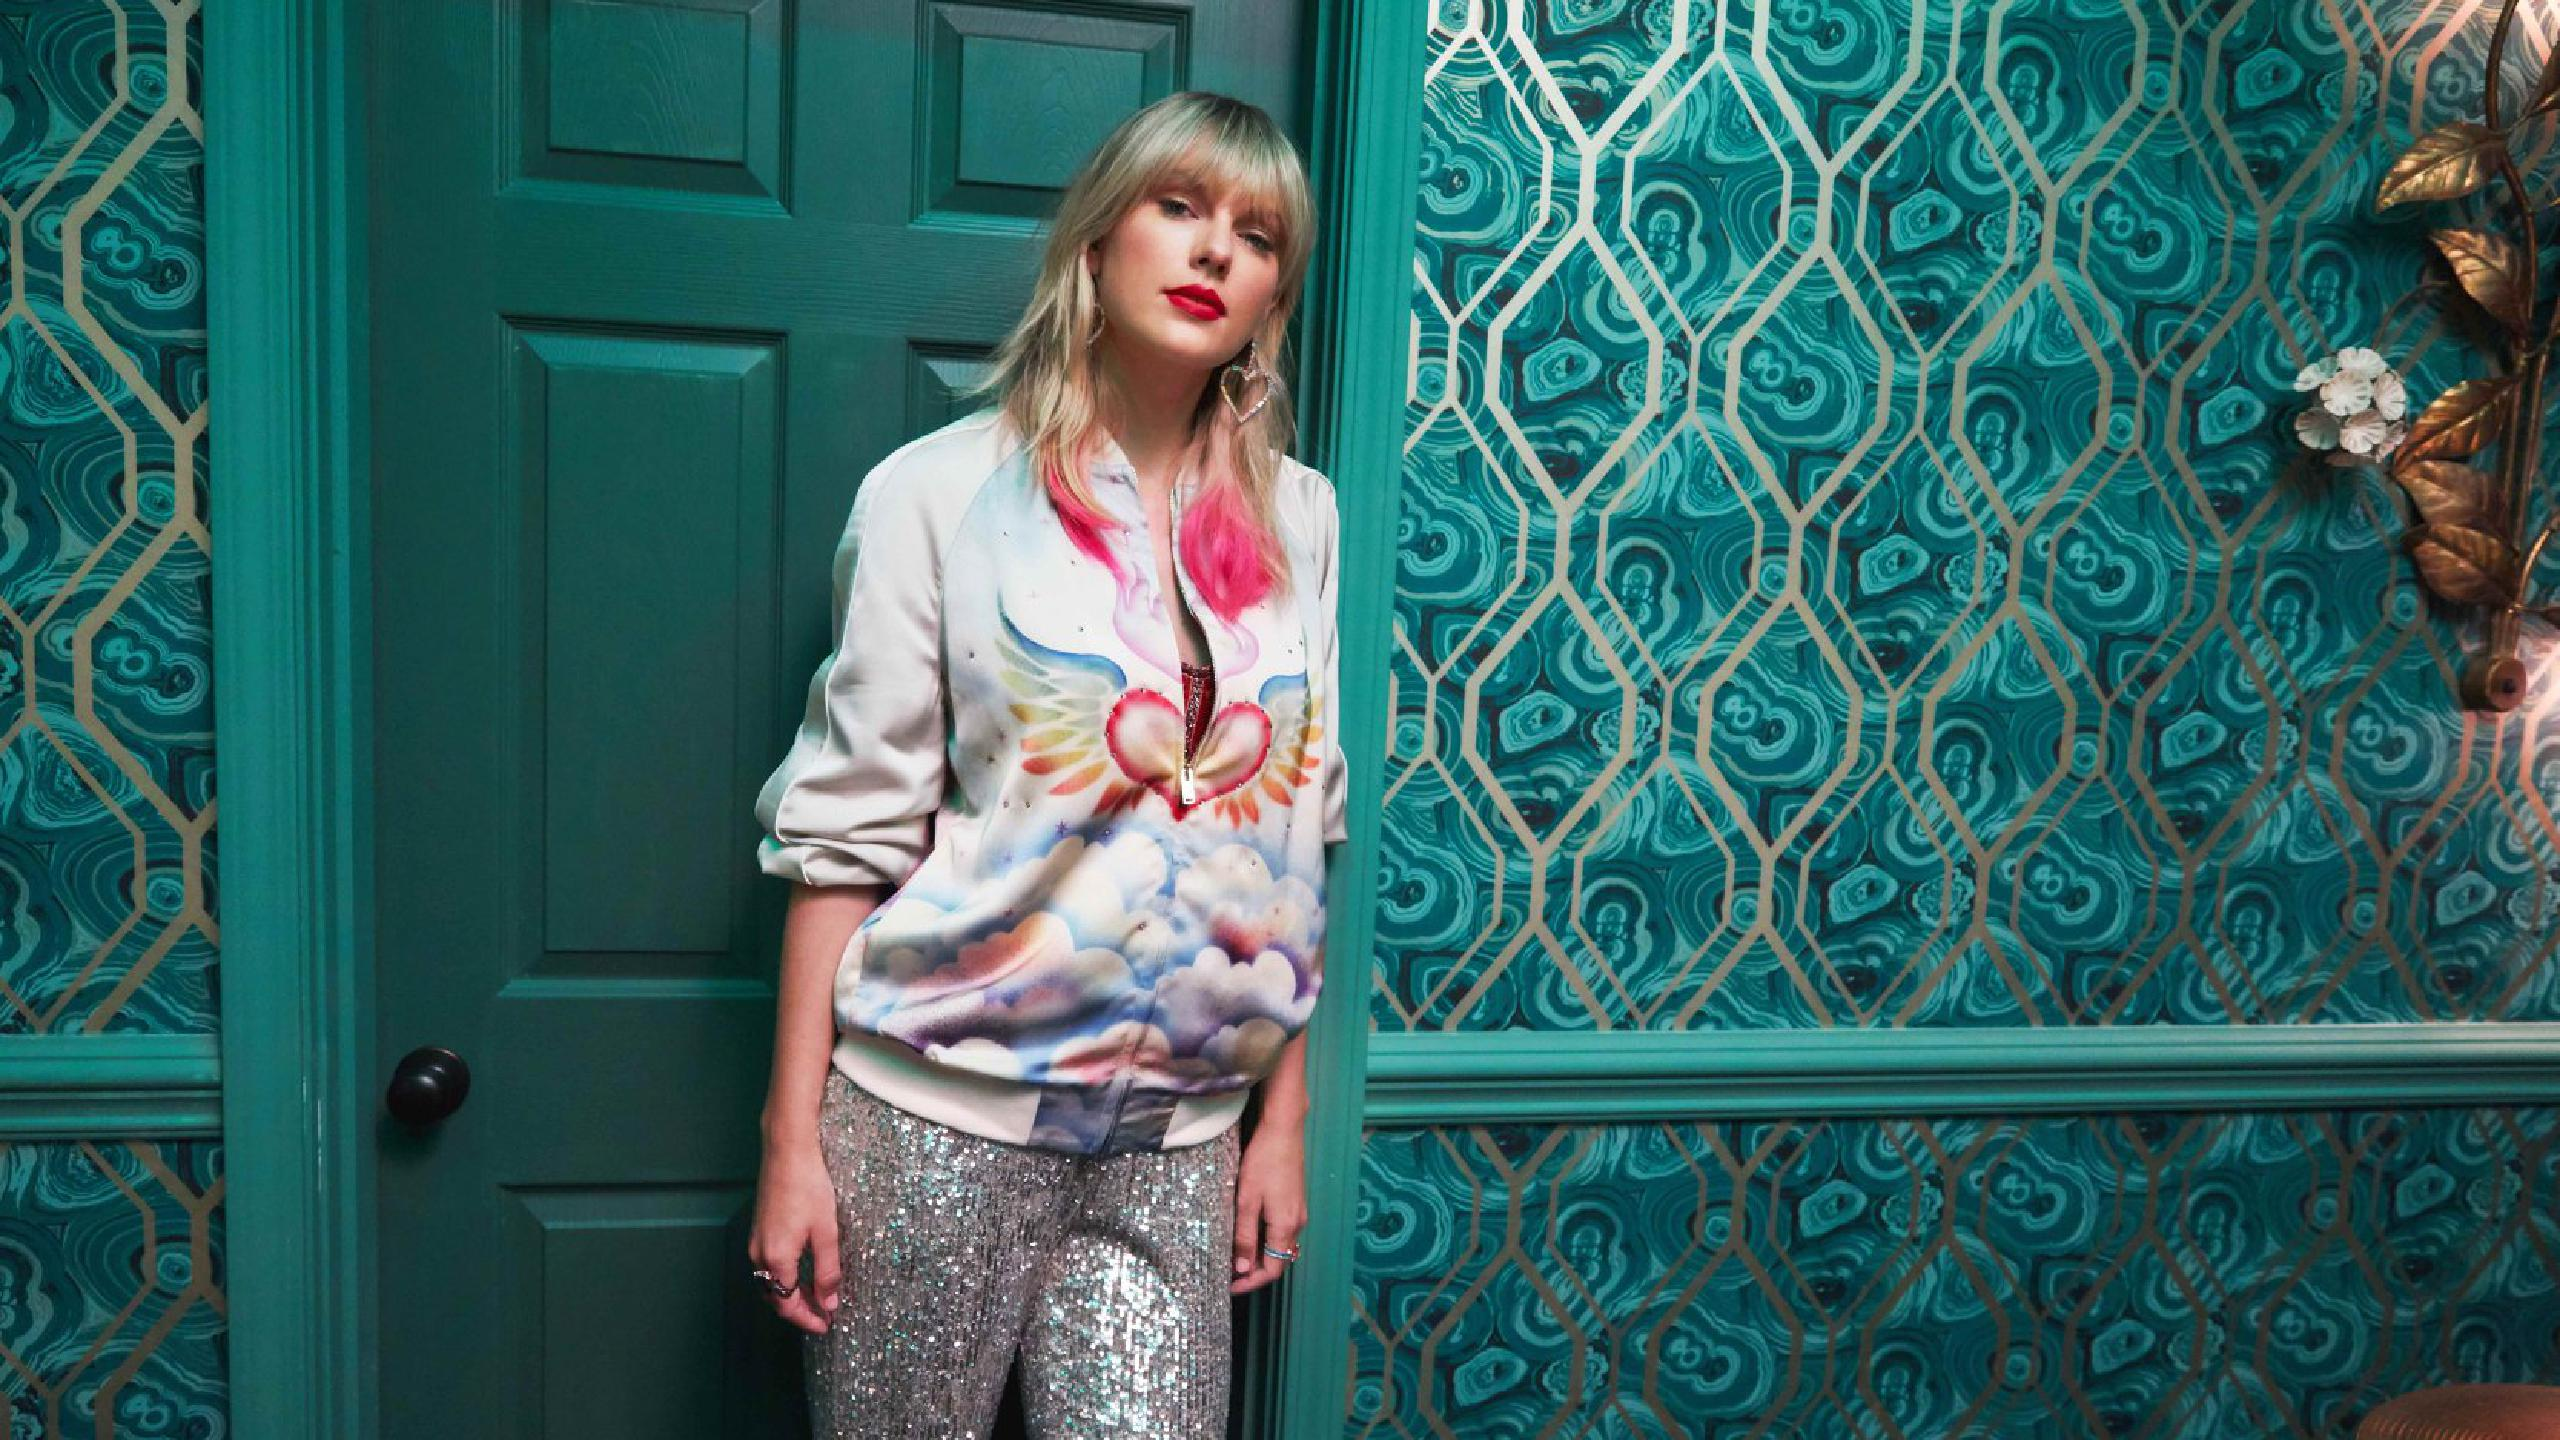 Taylor Swift Tour Dates 2020 2021 Taylor Swift Tickets And Concerts Wegow United States